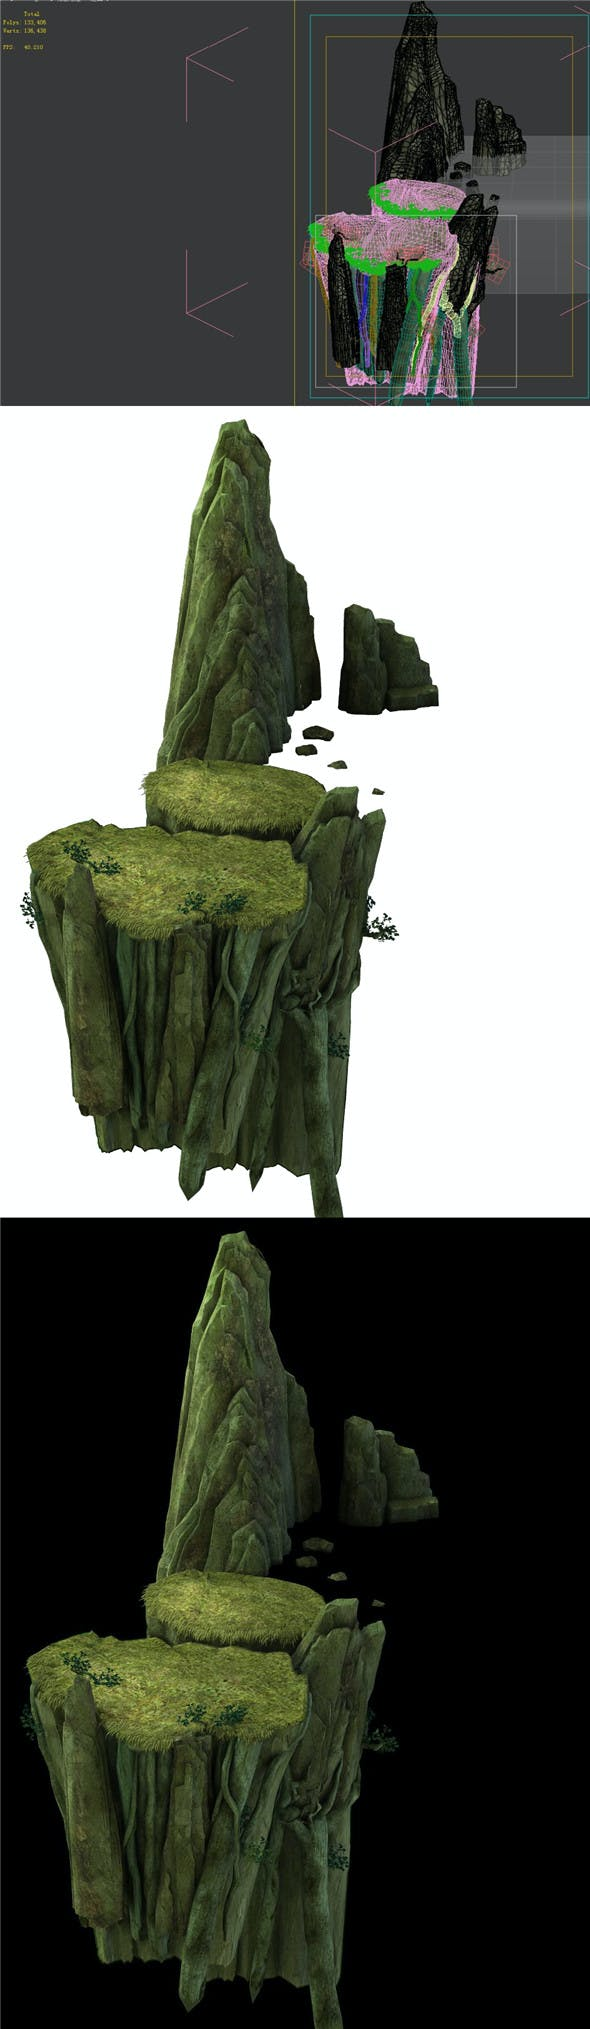 Game Model - Forest - Tree Bridge 02 - 3DOcean Item for Sale